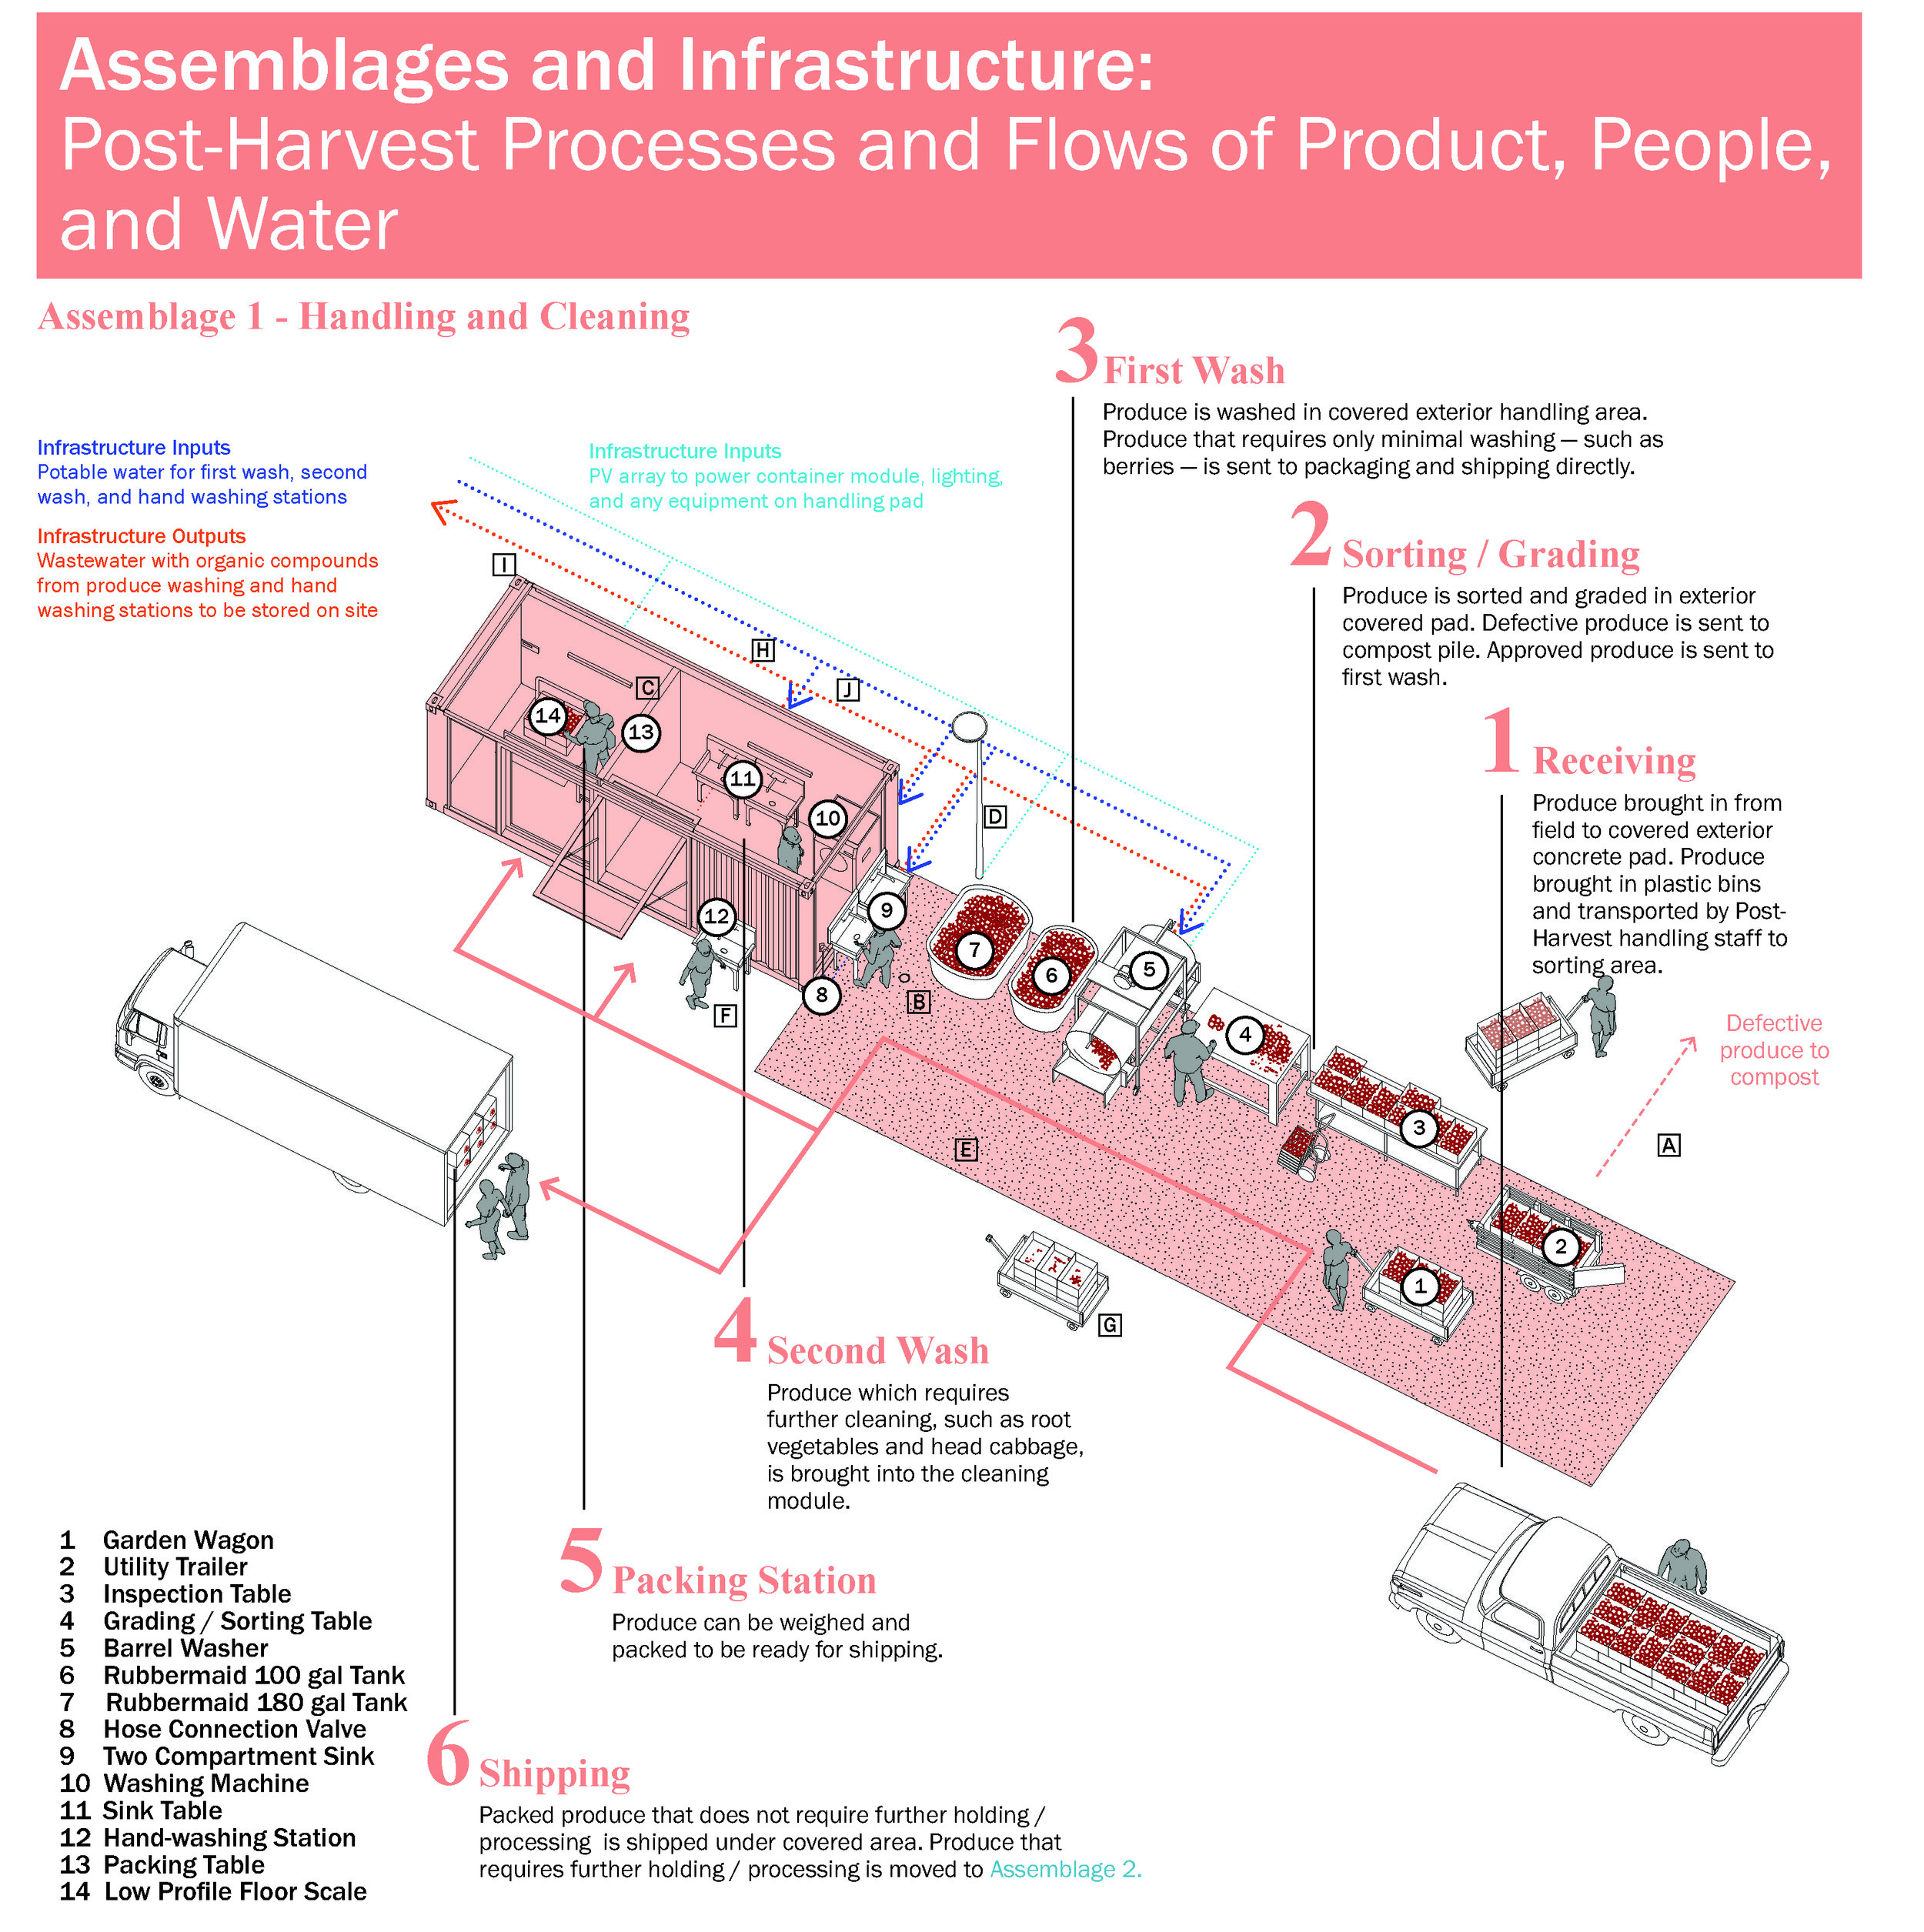 Assemblage 1 - Handling and Cleaning.jpg